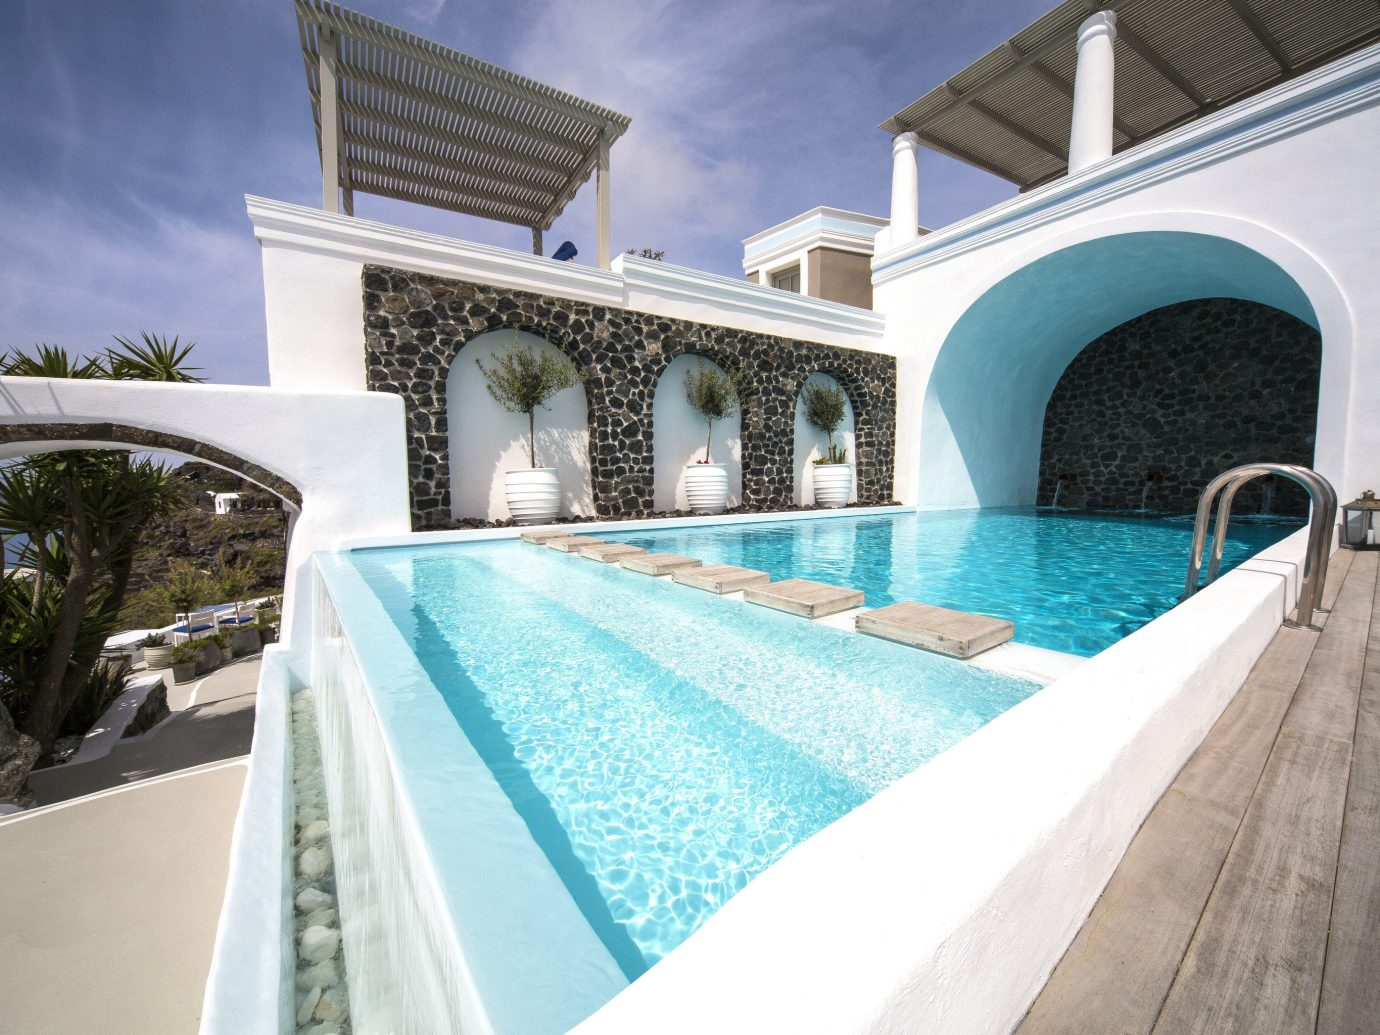 Greece Hotels Santorini outdoor Pool property swimming pool building estate water real estate Villa leisure hacienda amenity swimming tub stone